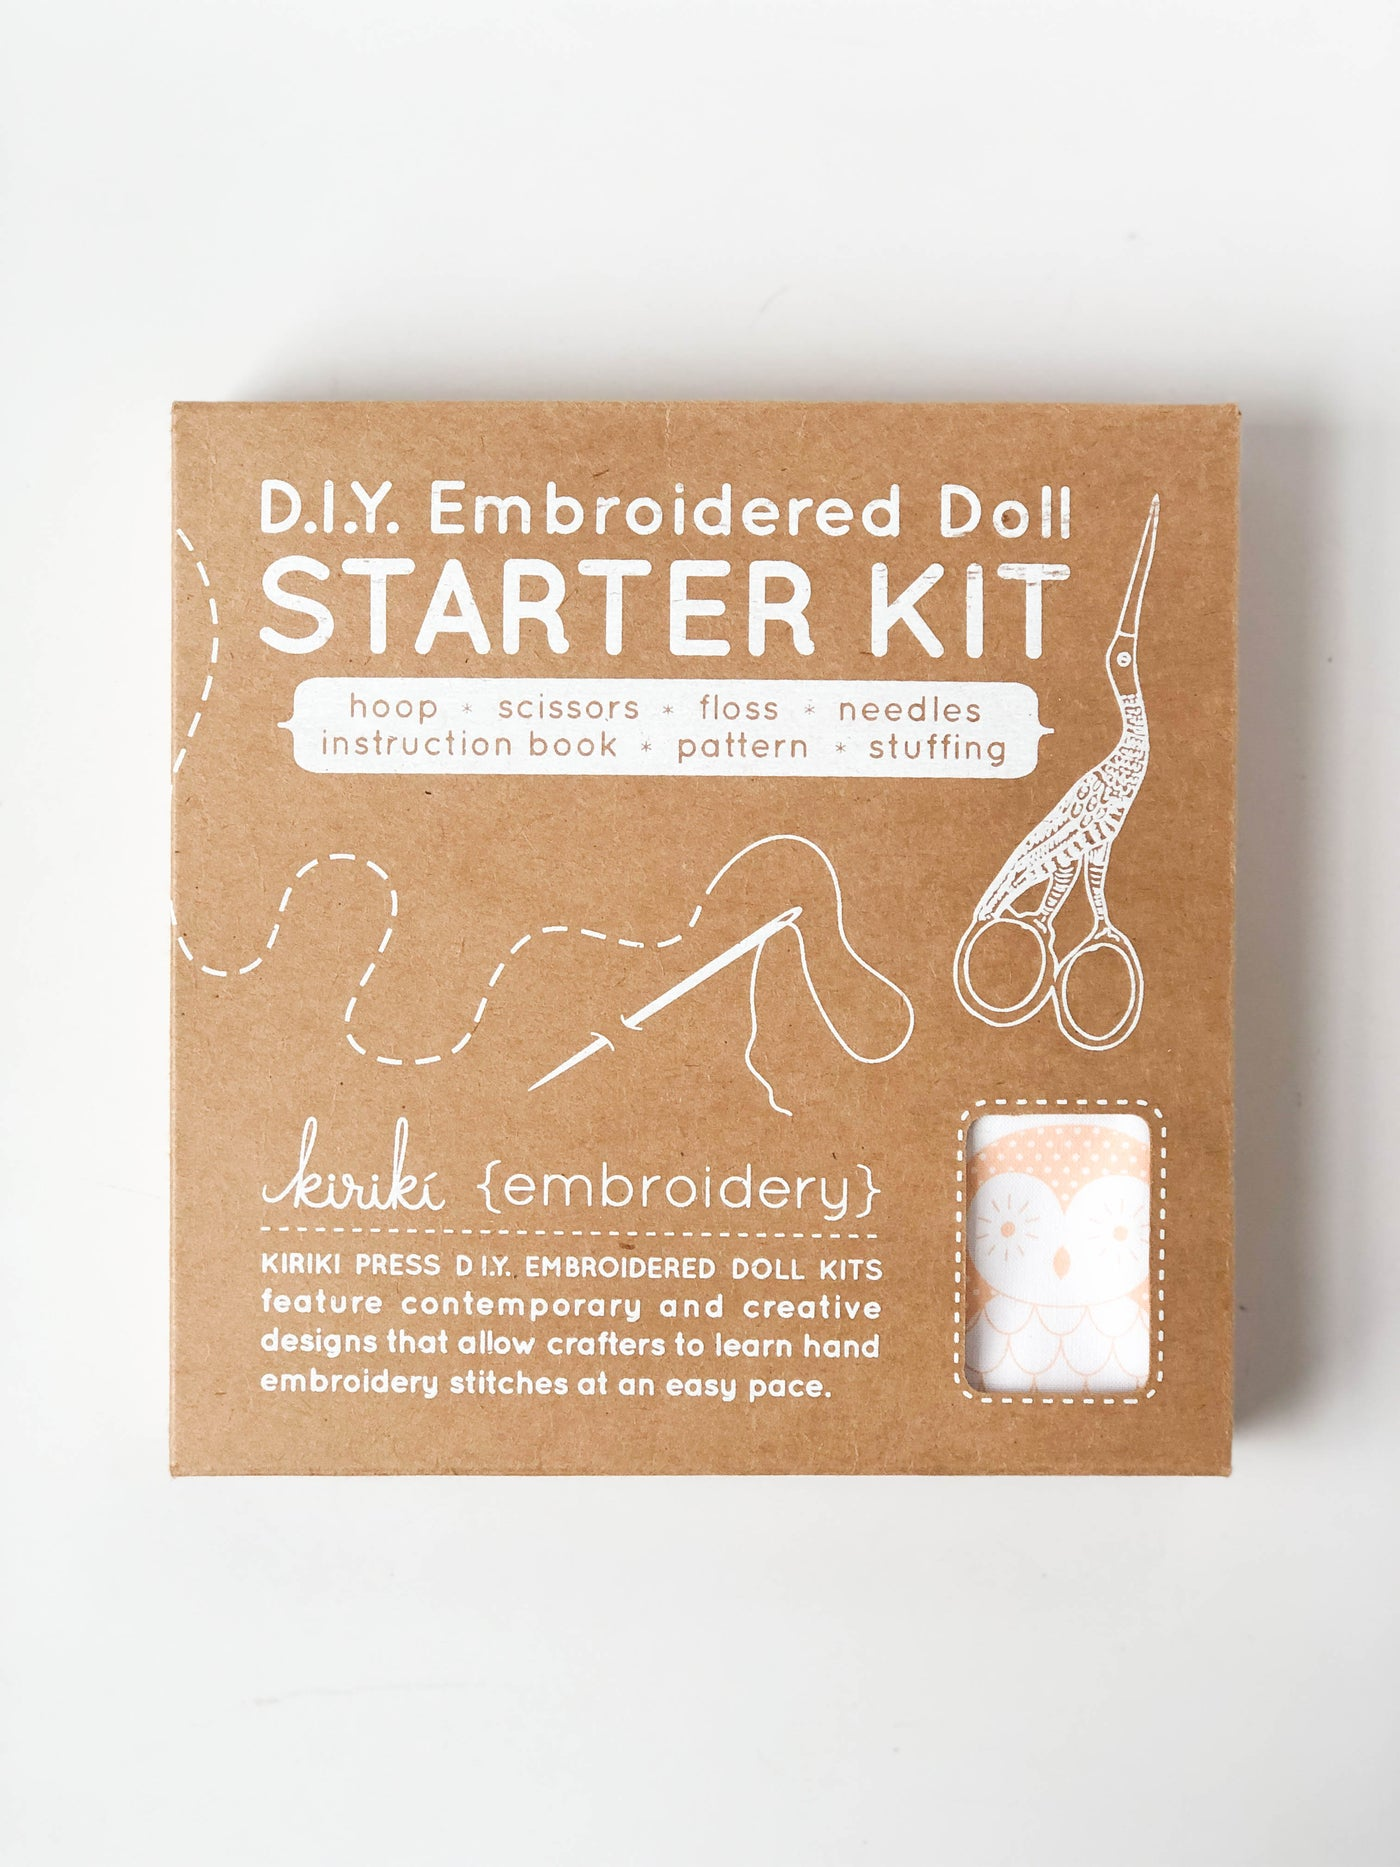 D.I.Y Embroidered Doll Starter Kit | Barn Owl